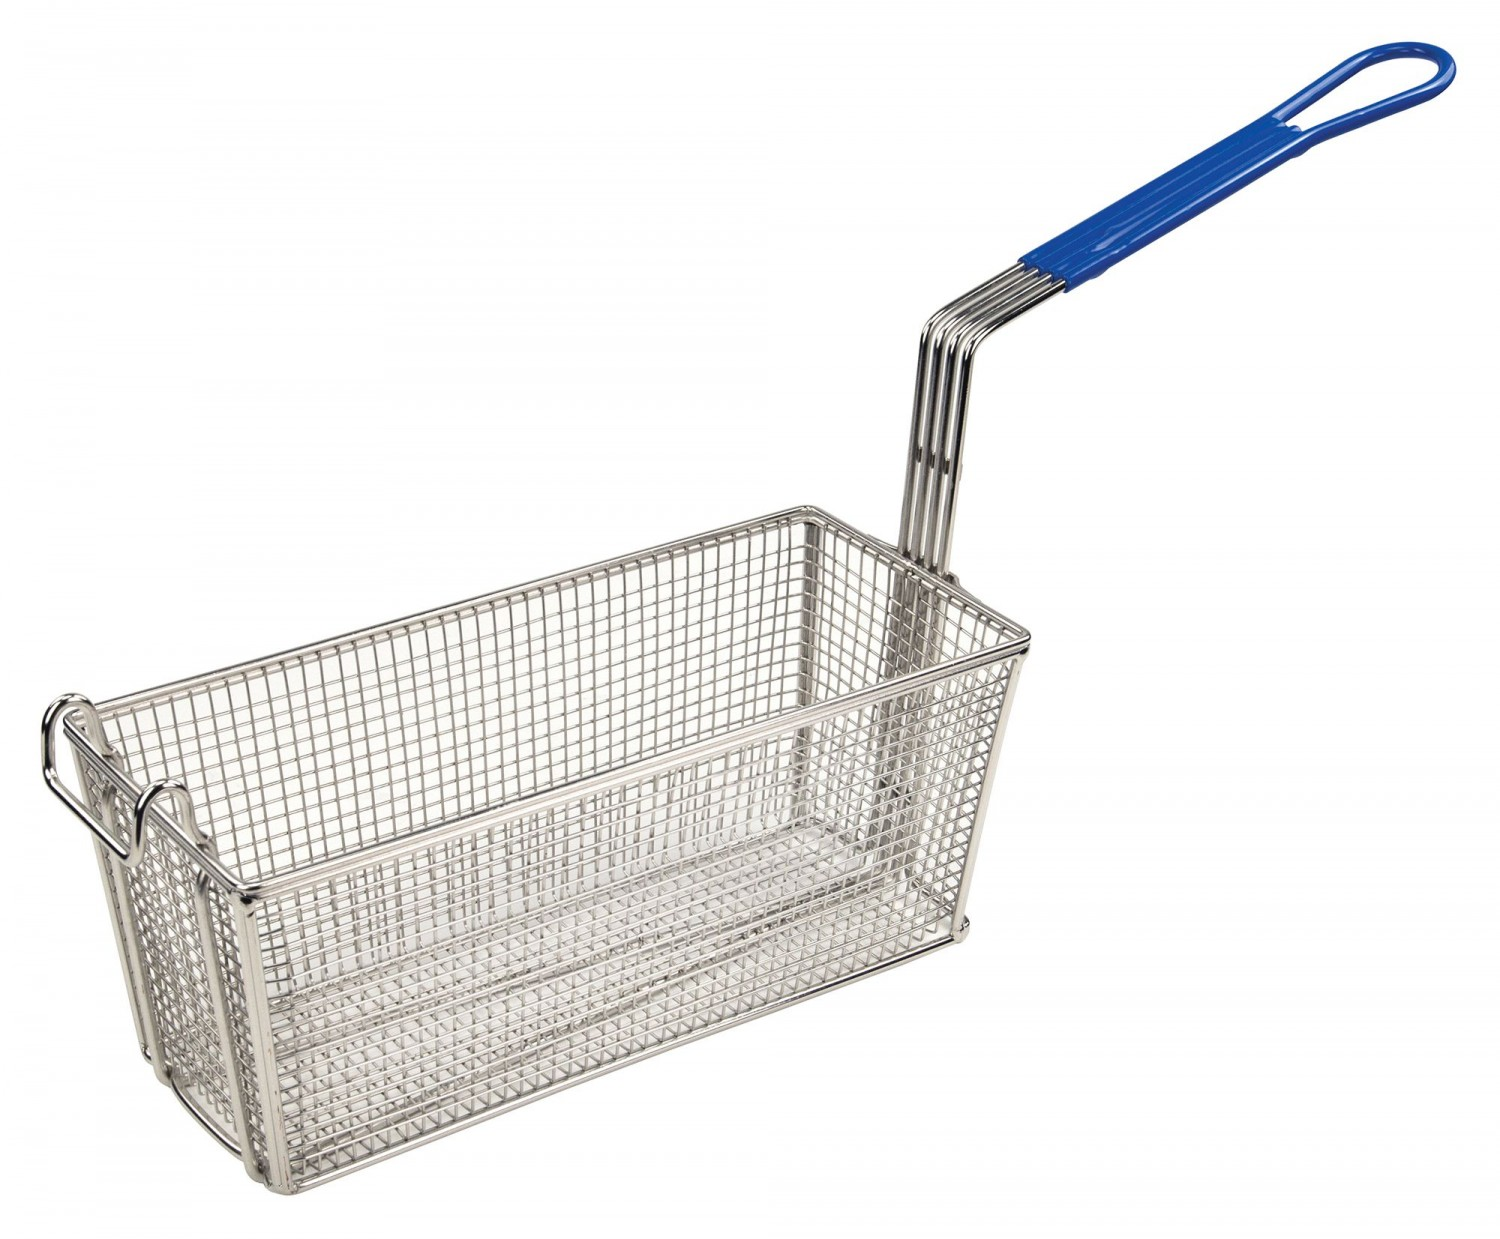 Winco FB-20 Heavy Duty Fry Basket with Blue Handle